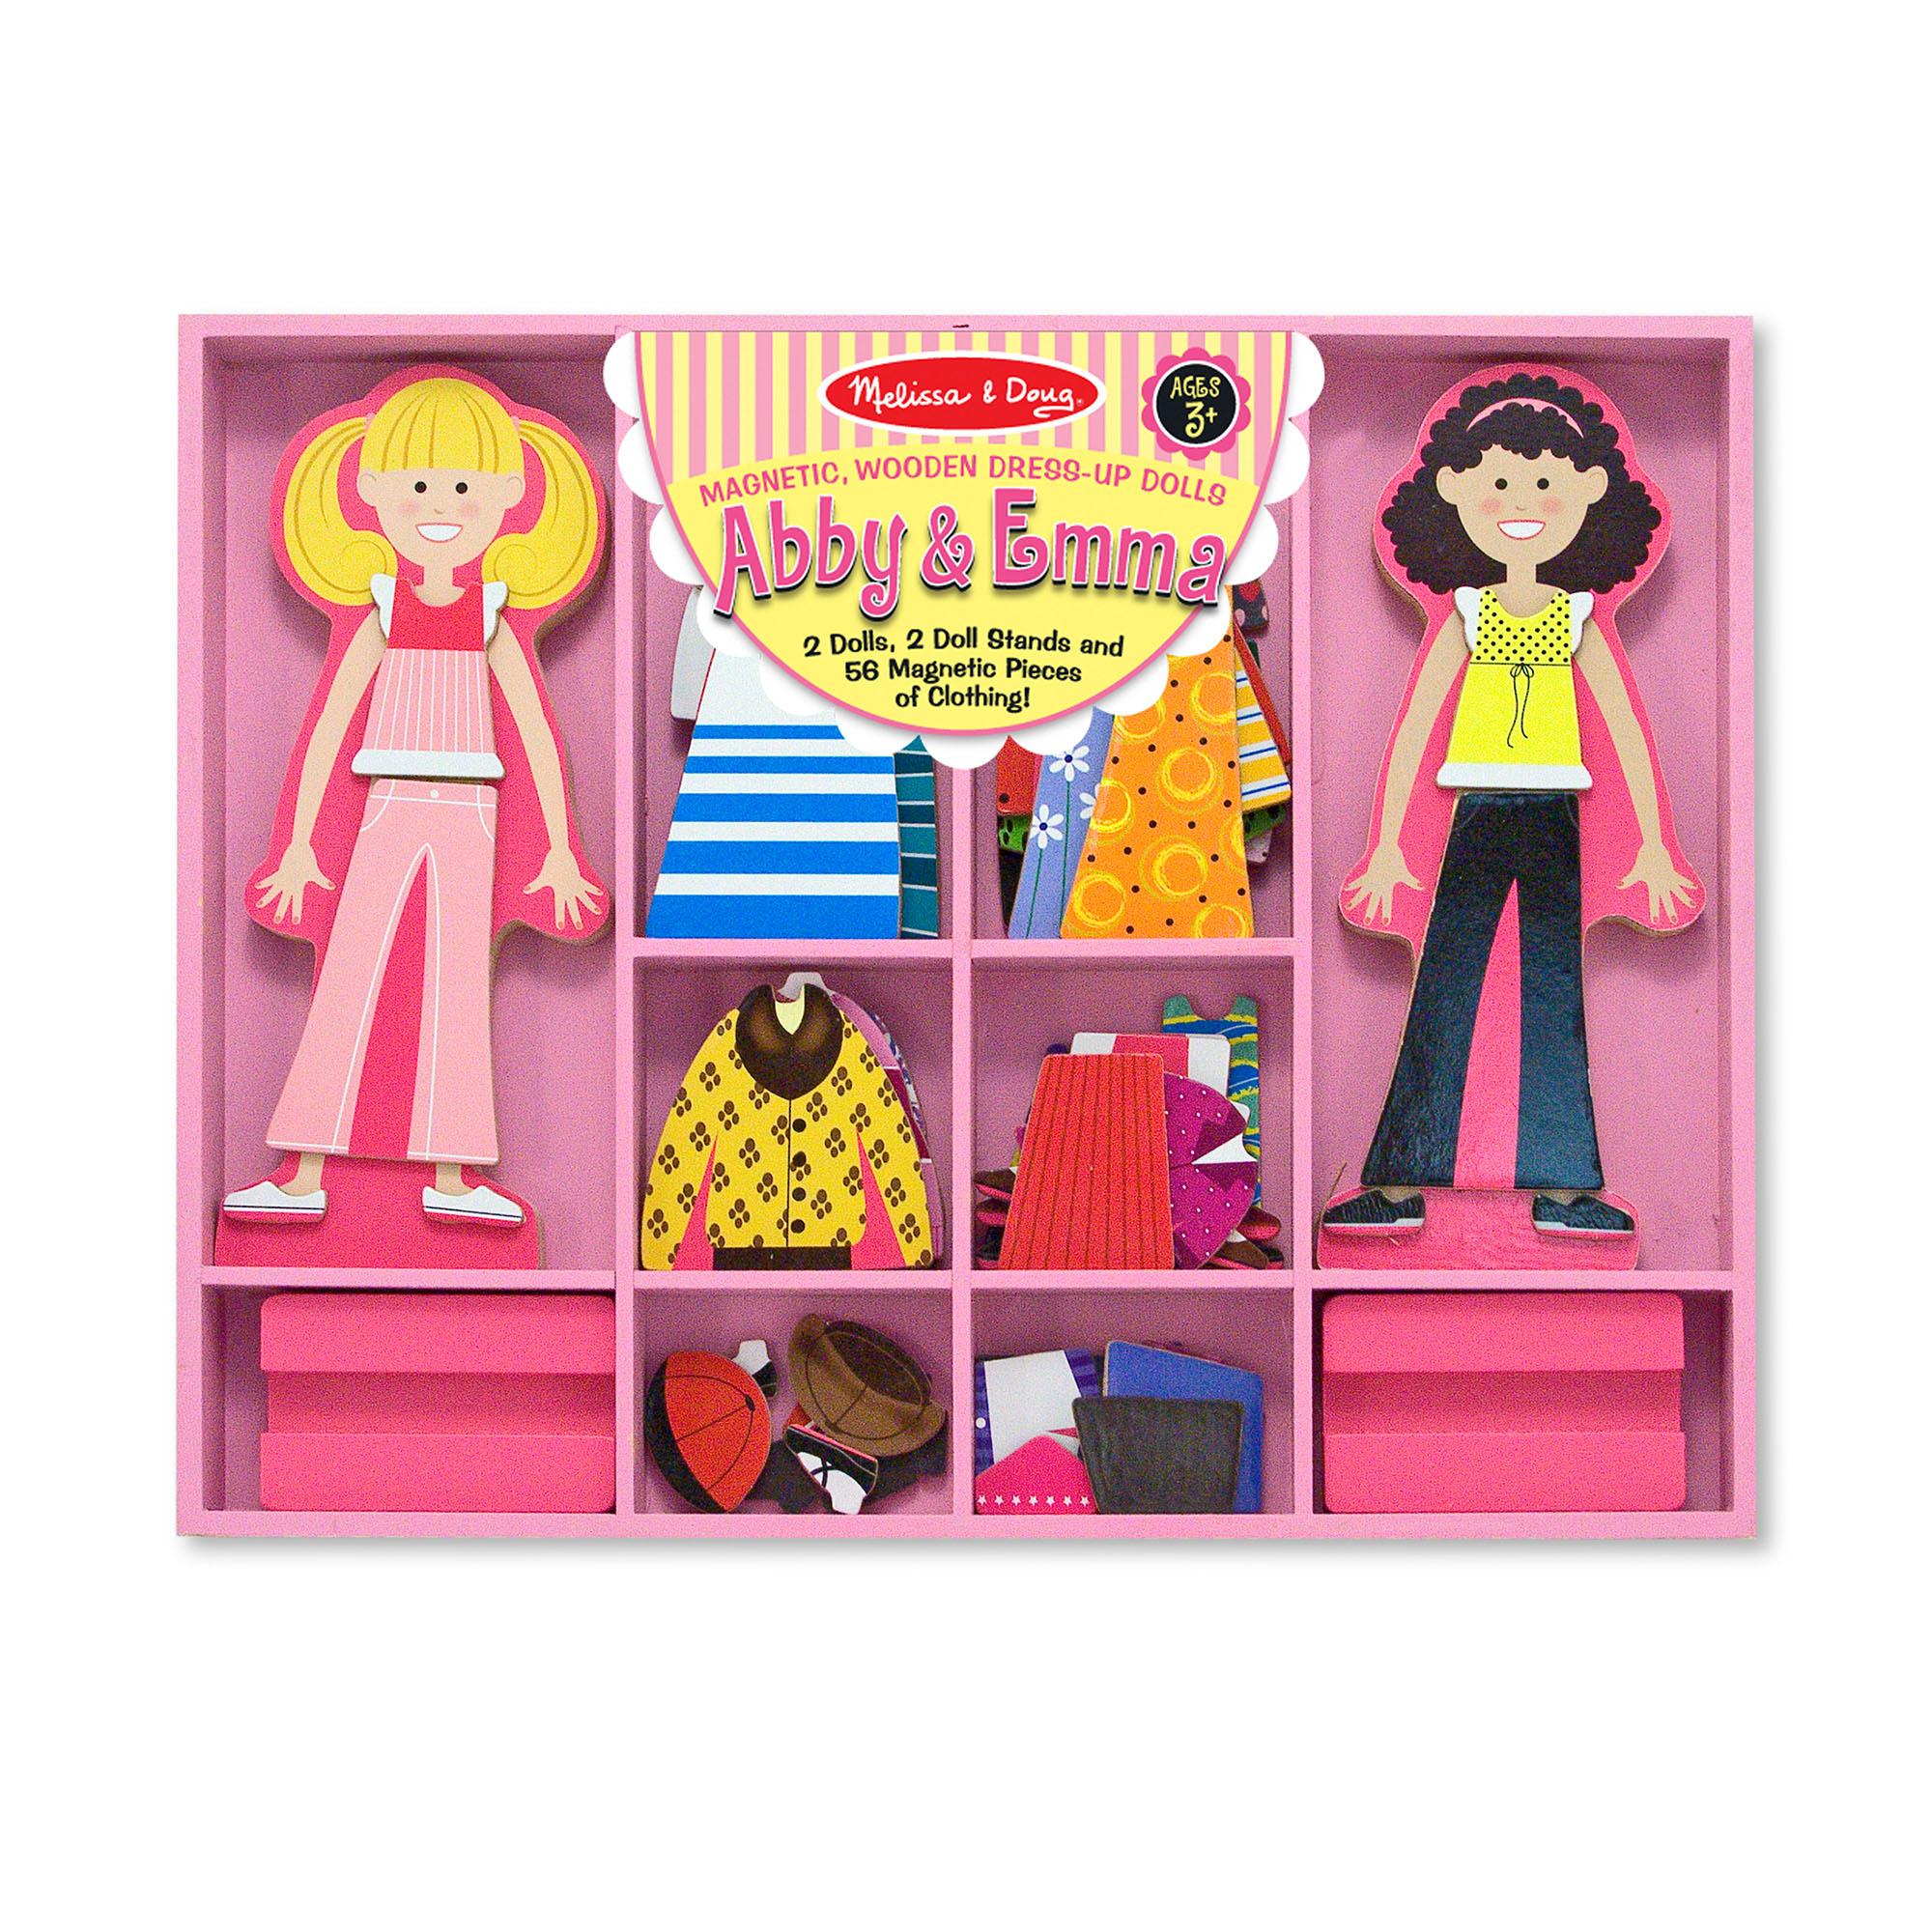 This magnetic dress-up play set makes kids the stylists! This wooden magnetic dress-up dolls play set includes two doll figures and 56 pieces of magnetic clothing that fit onto either one. Mix and match hundreds of possible doll outfits. then rearrange the pieces to change them again and again! Each magnetic fashion doll comes with a wooden stand for display and pretend play, and the complete fashion play set fits in a sturdy wooden storage tray that keeps everything in its place.